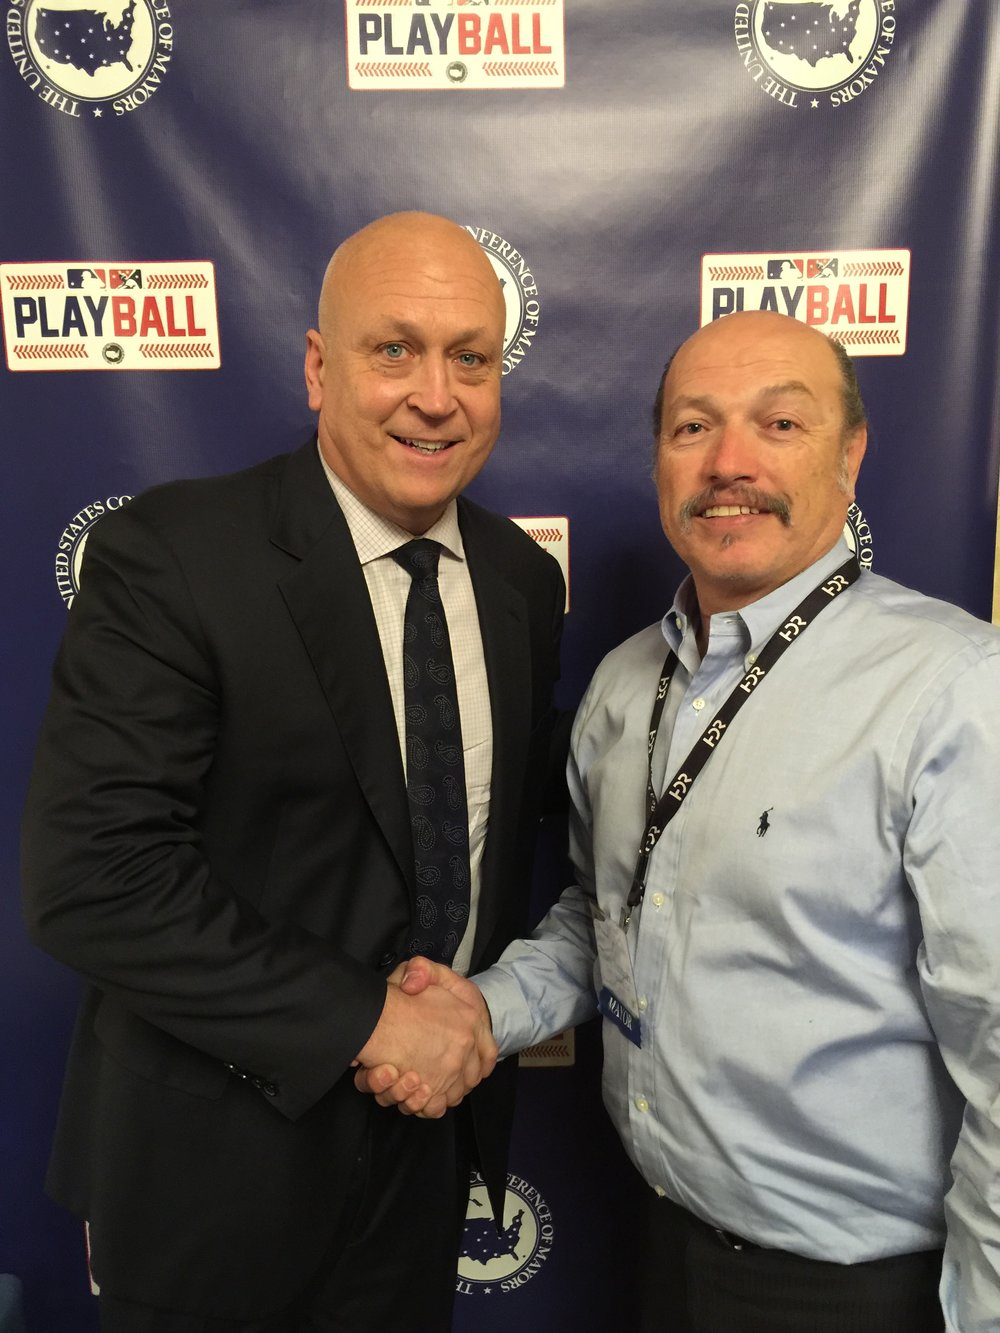 Tony with hall of famer Cal Ripken Jr.